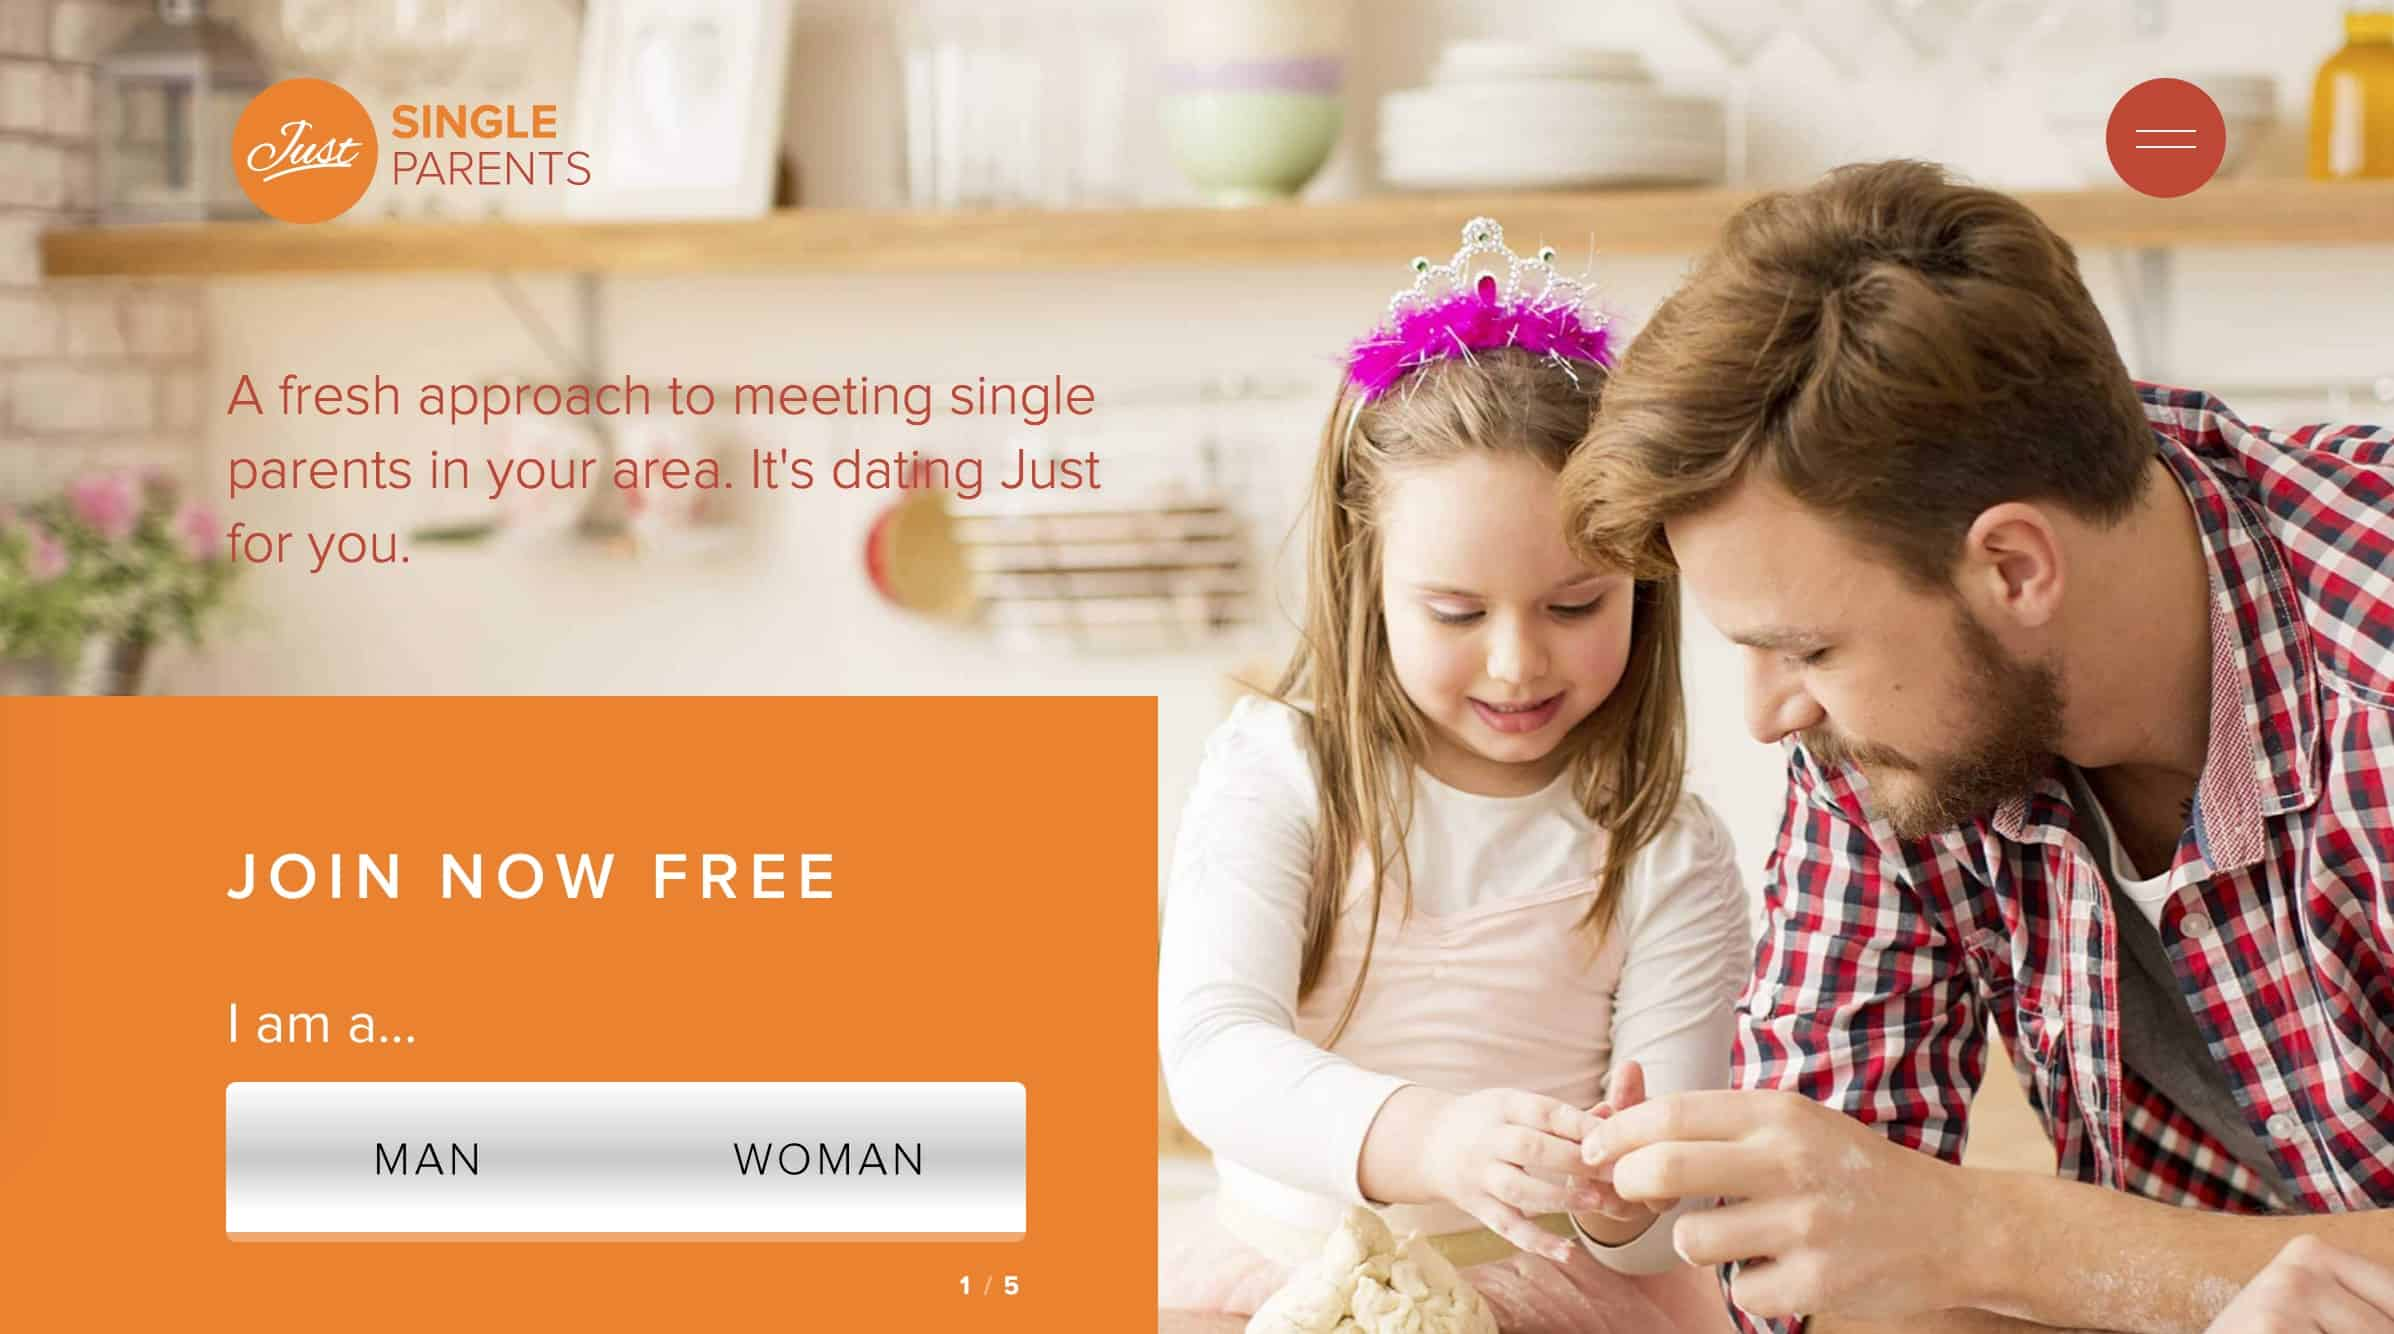 dell single parent personals Are you a single mom or single dad parents without partners trust singleparentsmeetcom to help them succeed at online dating.